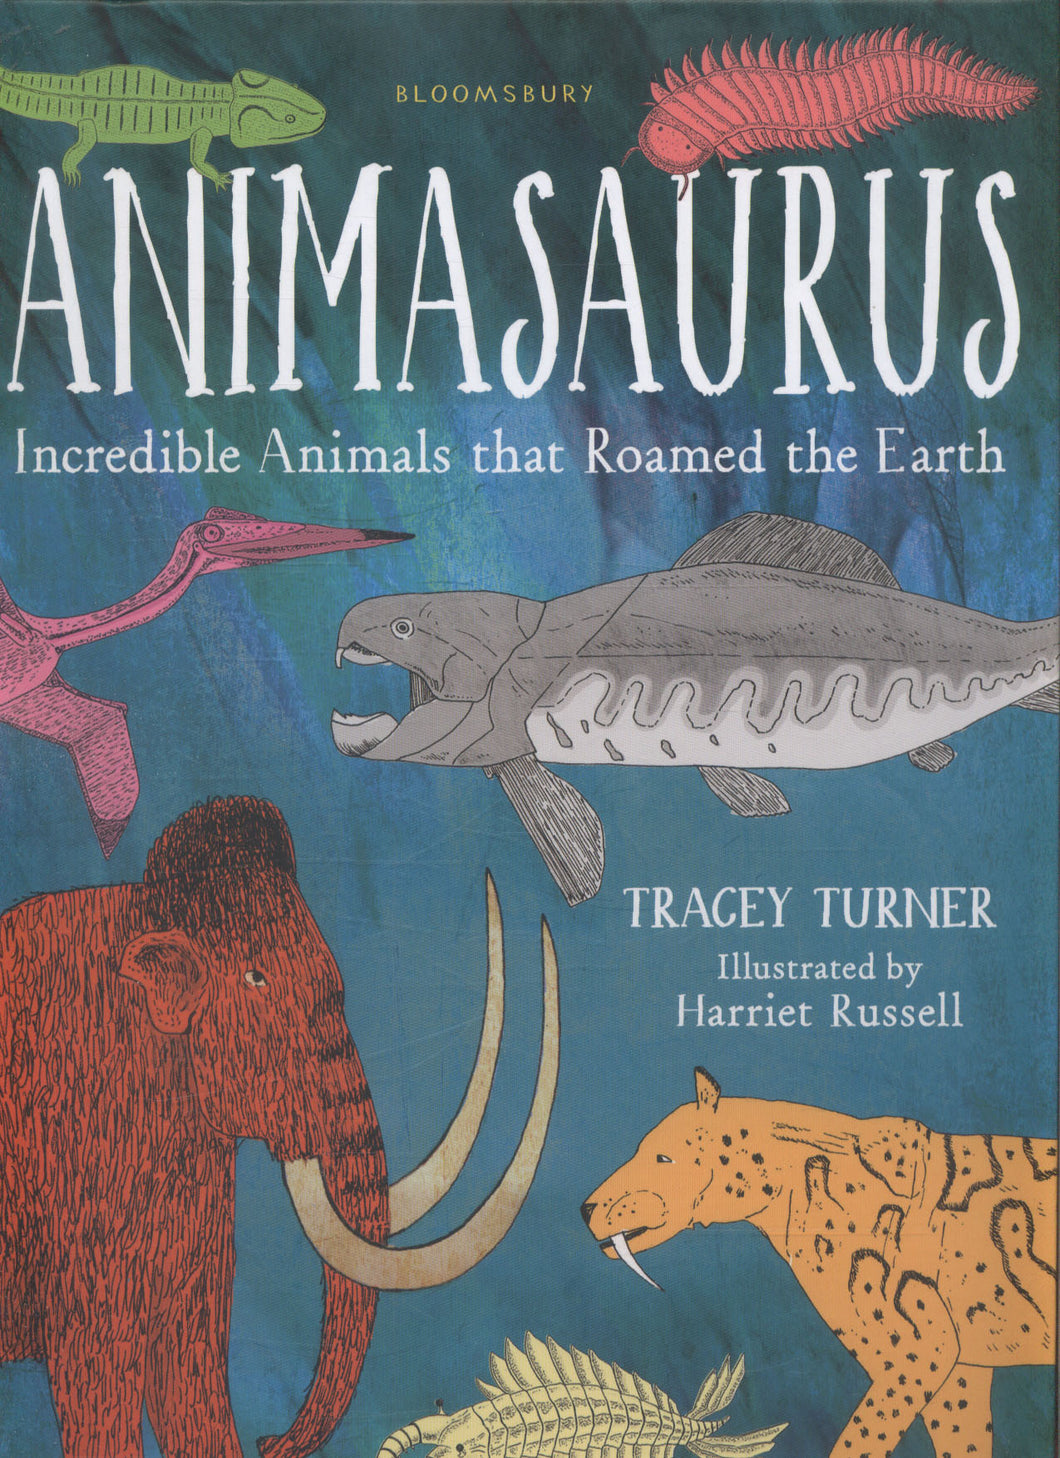 Animasaurus: Incredible Animals that Roamed the Earth